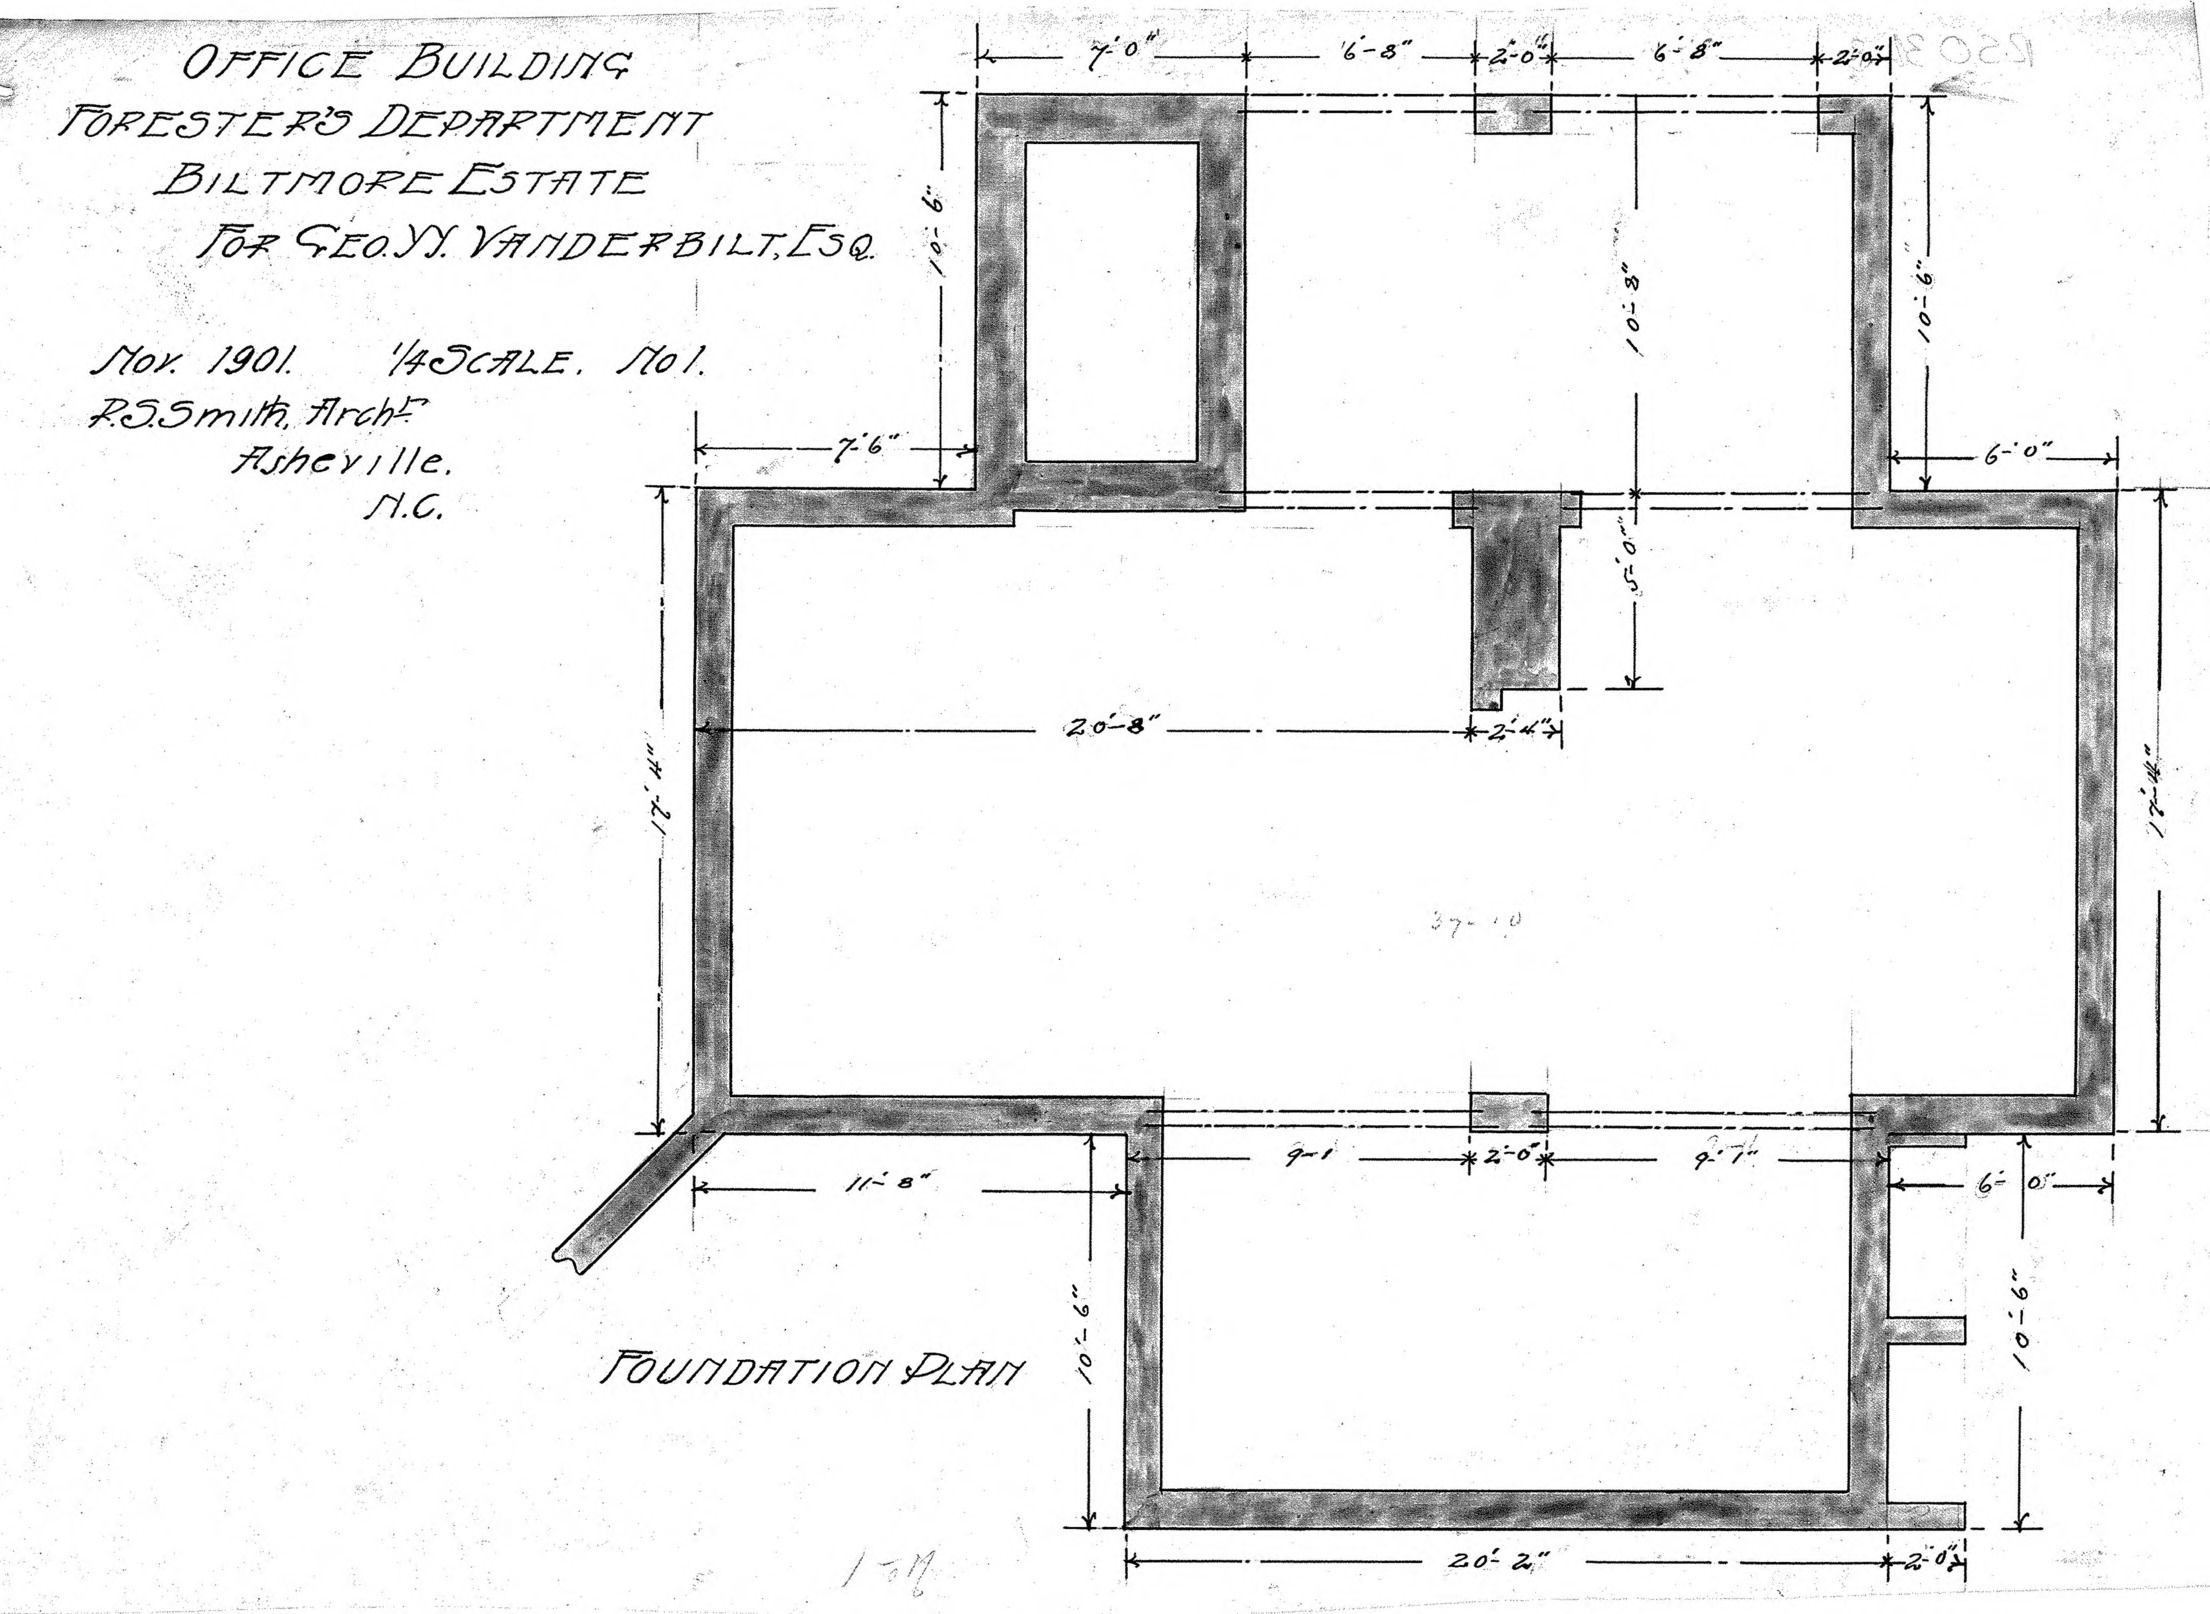 Building foundation drawing for Foundation plan drawing